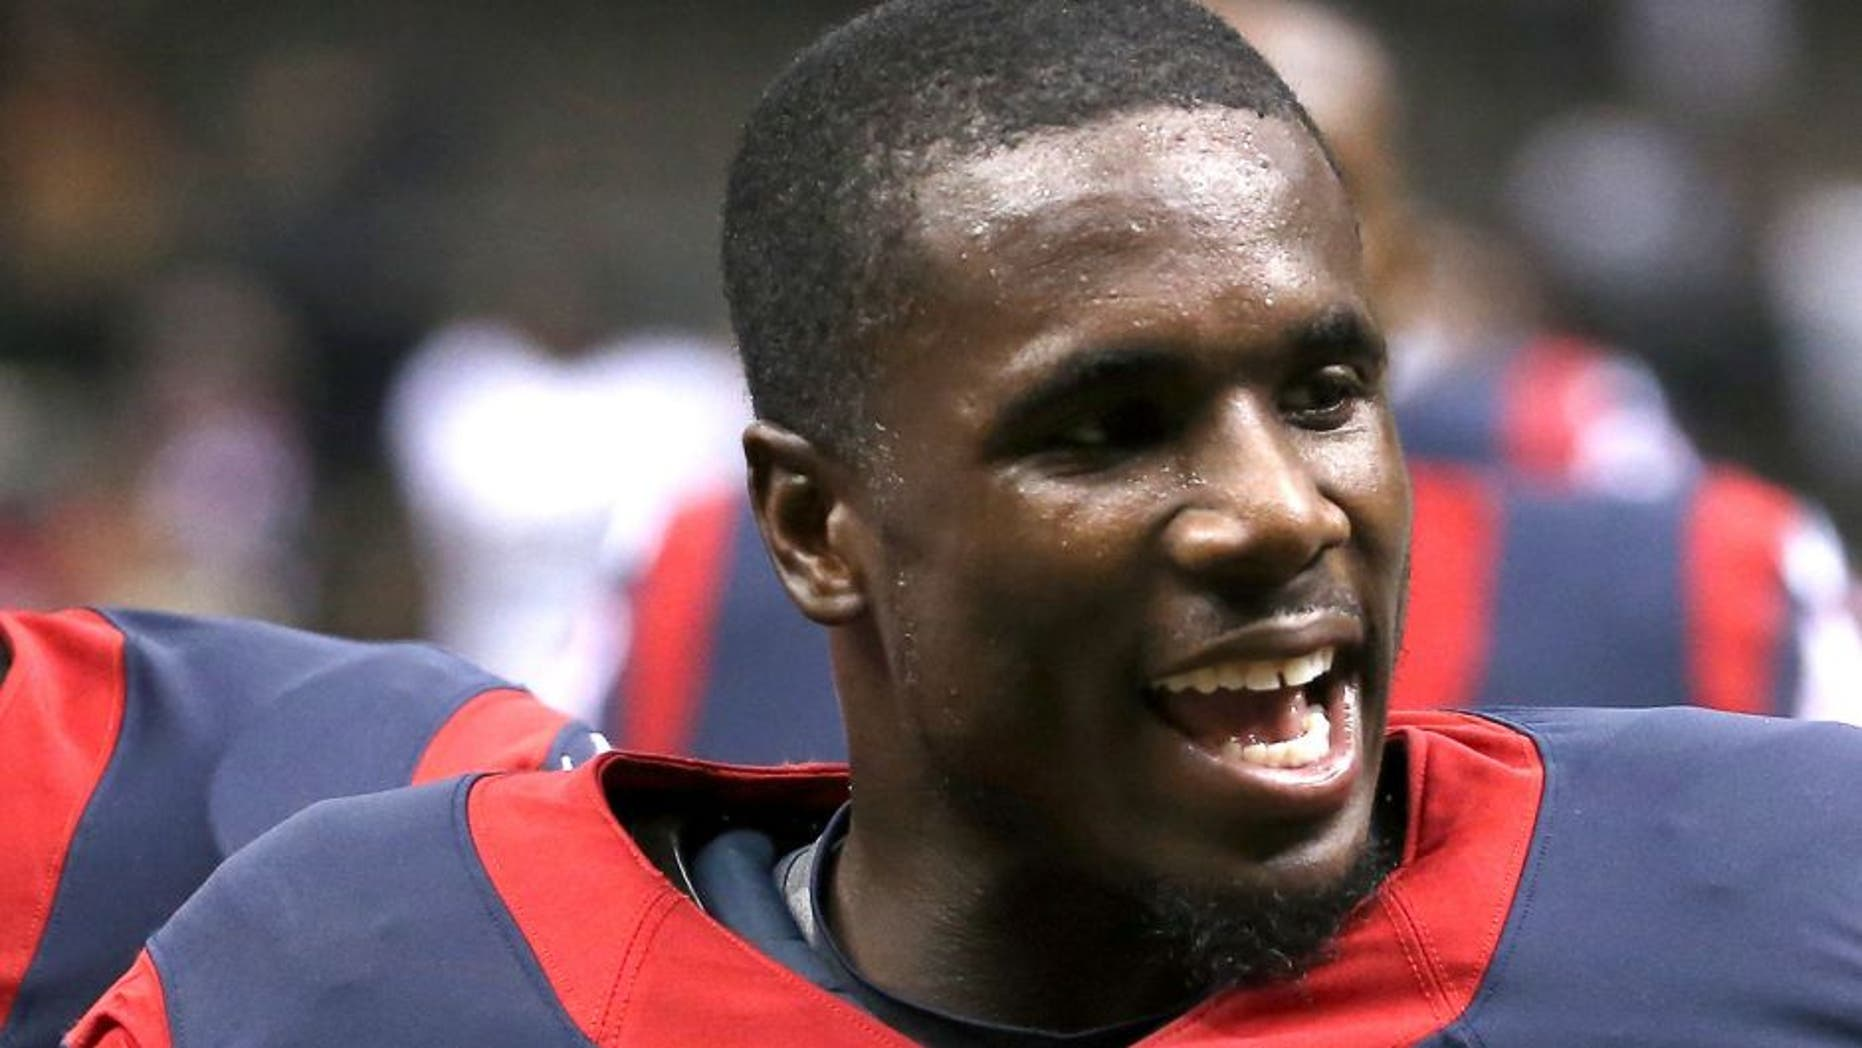 NEW ORLEANS, LA - AUGUST 30: Charles James #31 of the Houston Texans at the Mercedes-Benz Superdome on August 30, 2015 in New Orleans, Louisiana. (Photo by Chris Graythen/Getty Images)